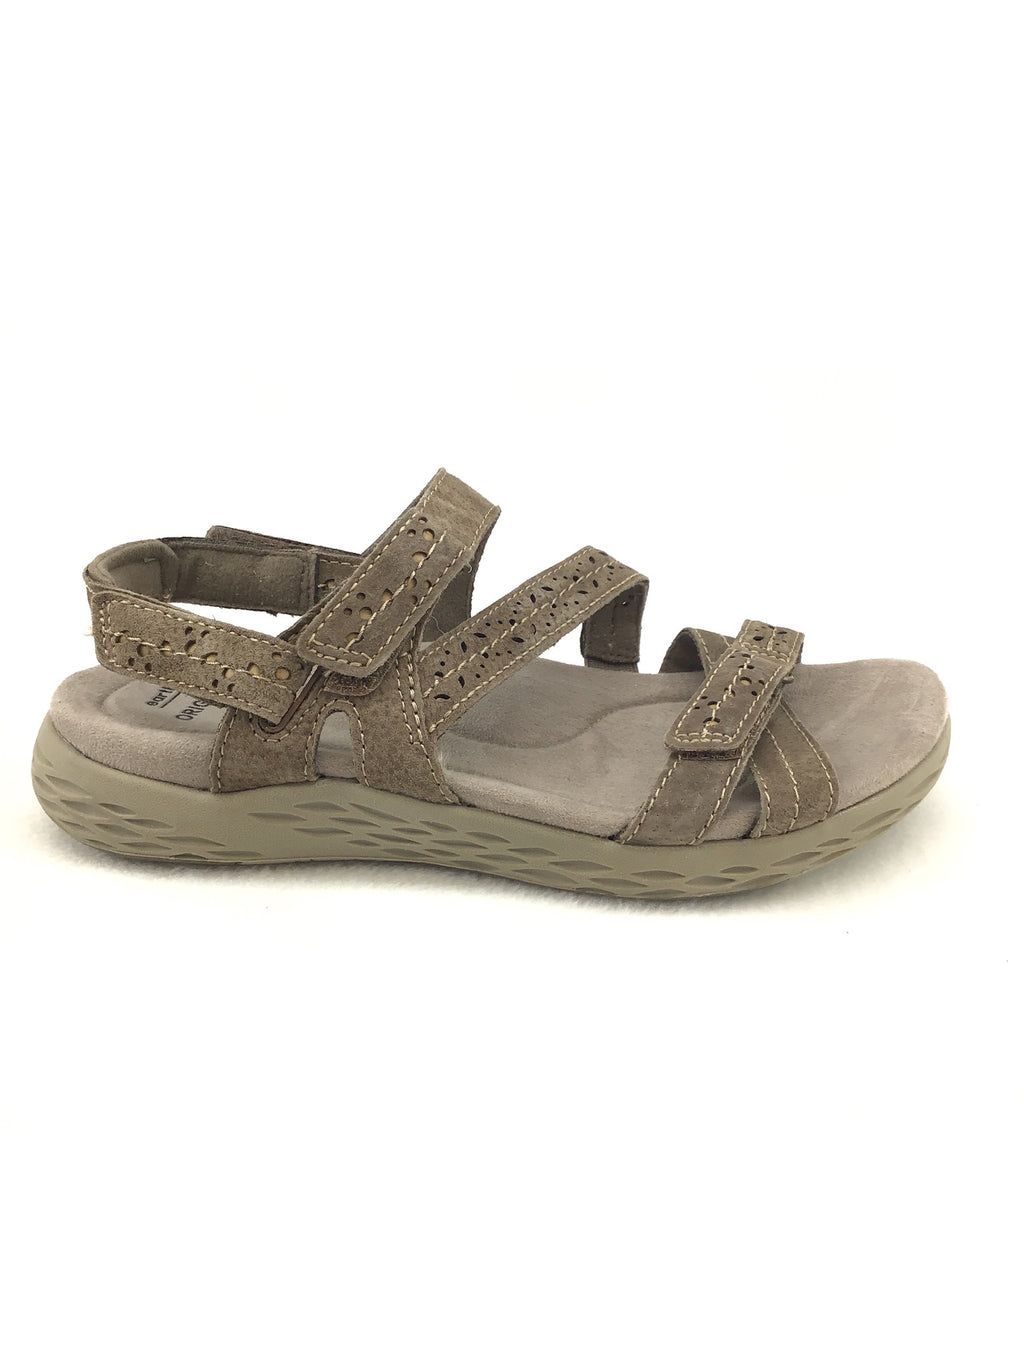 Earth Origins Sandals Size 8